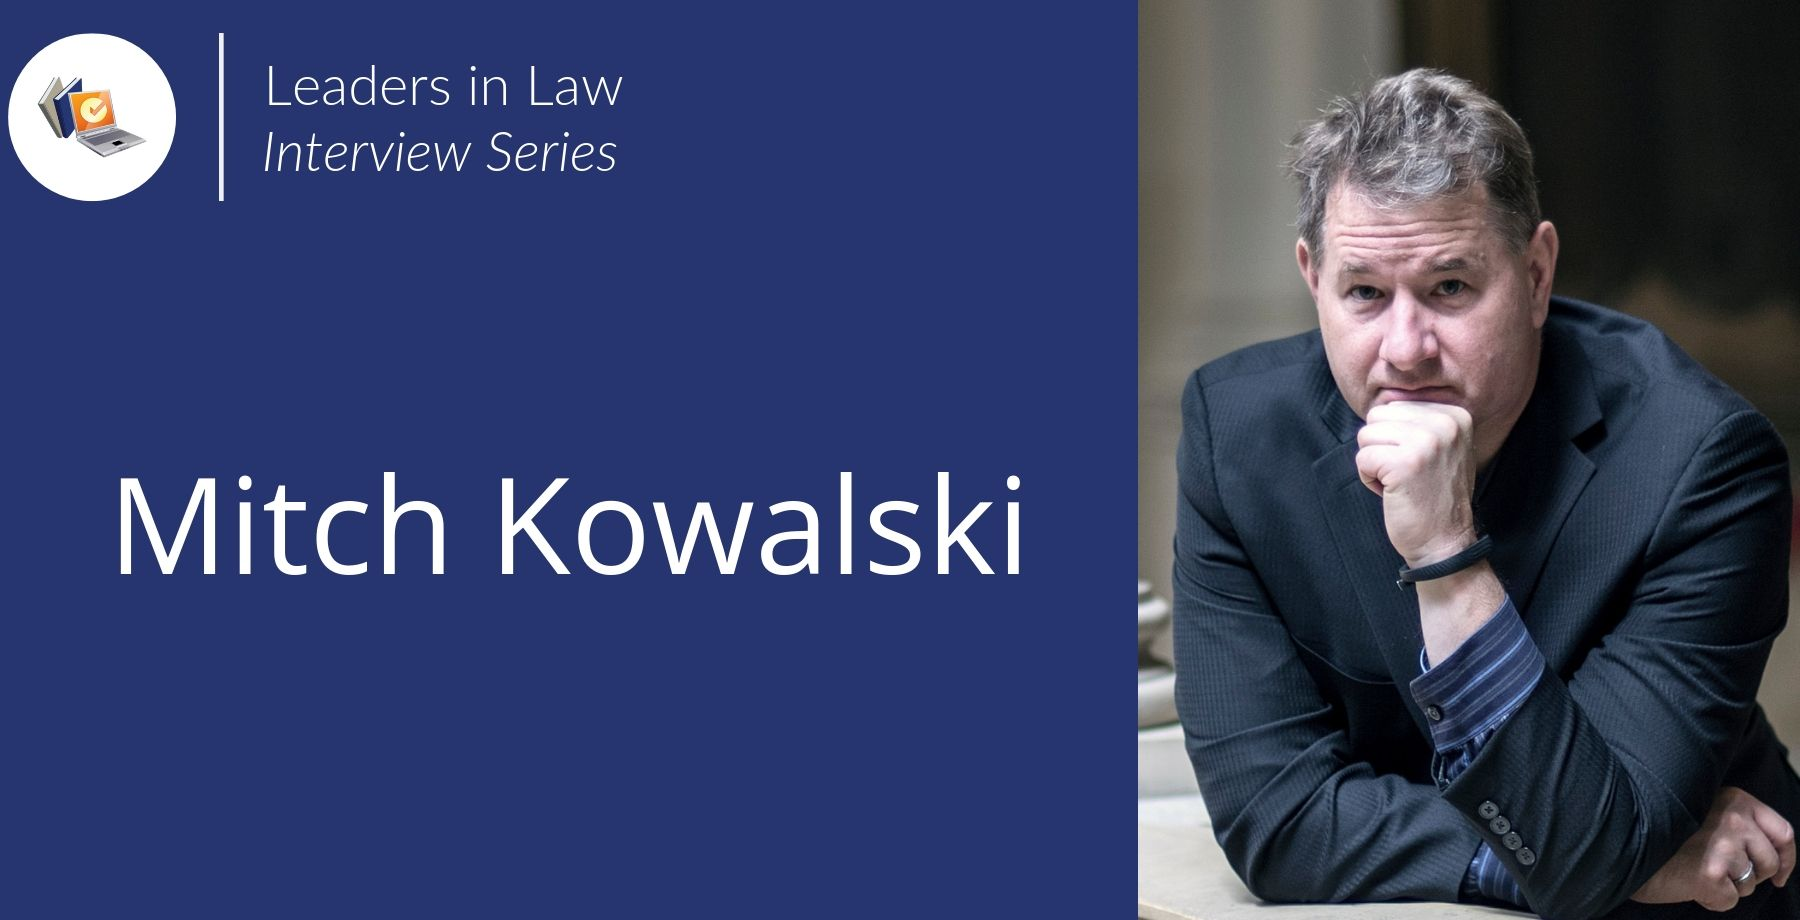 Leaders in Law - Mitch Kowalski Interview